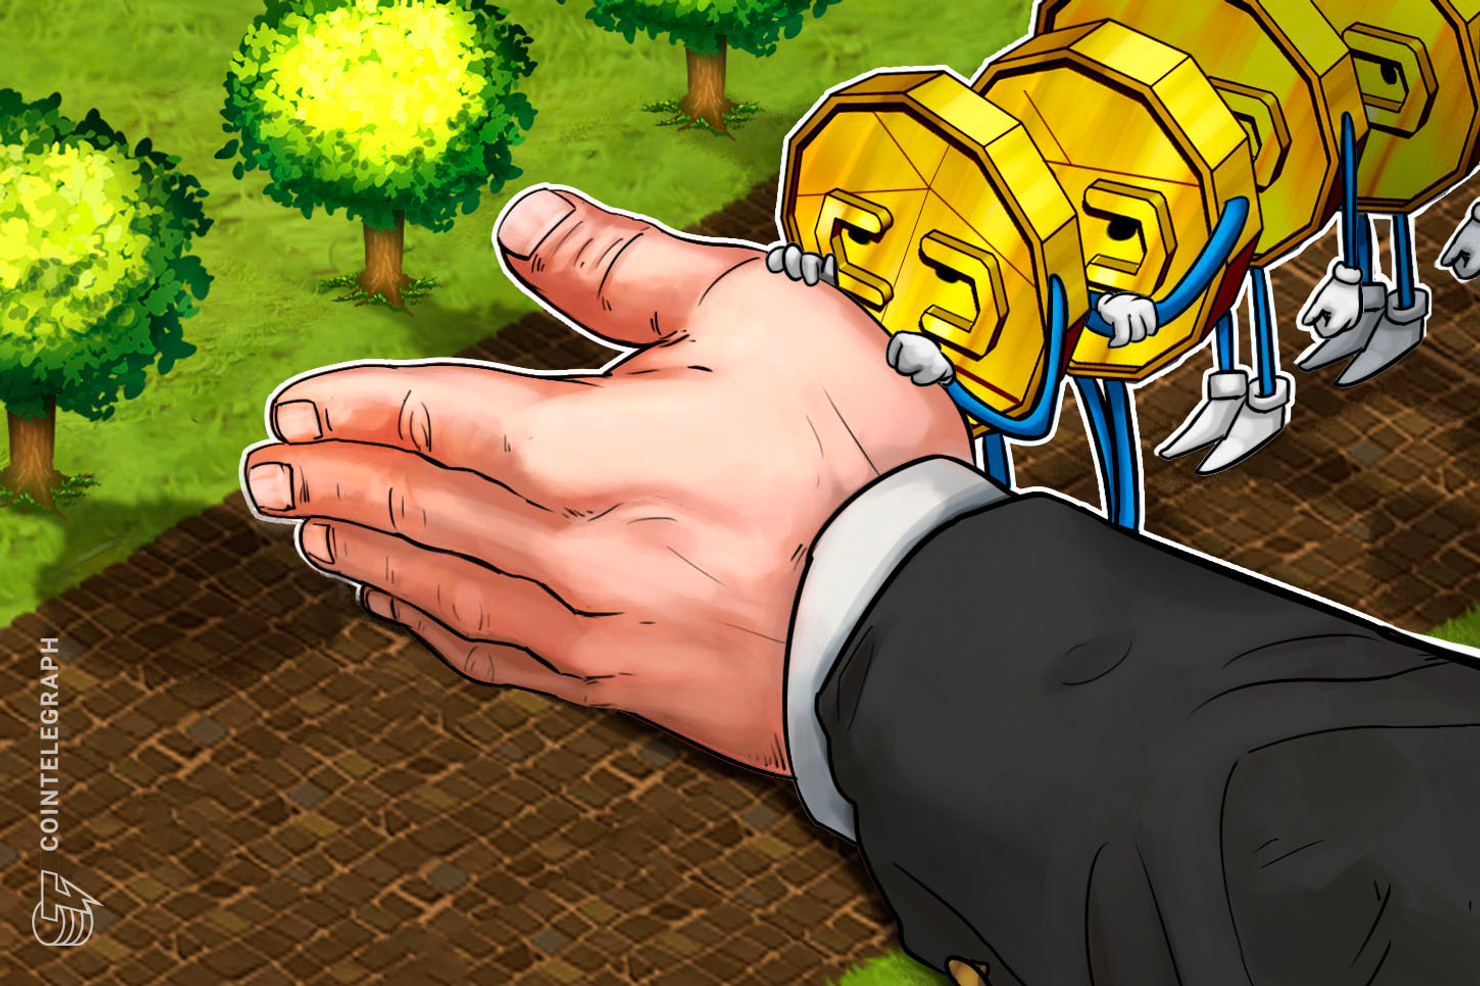 Poloniex Stops Offering Nine Coins in US Due to Uncertain